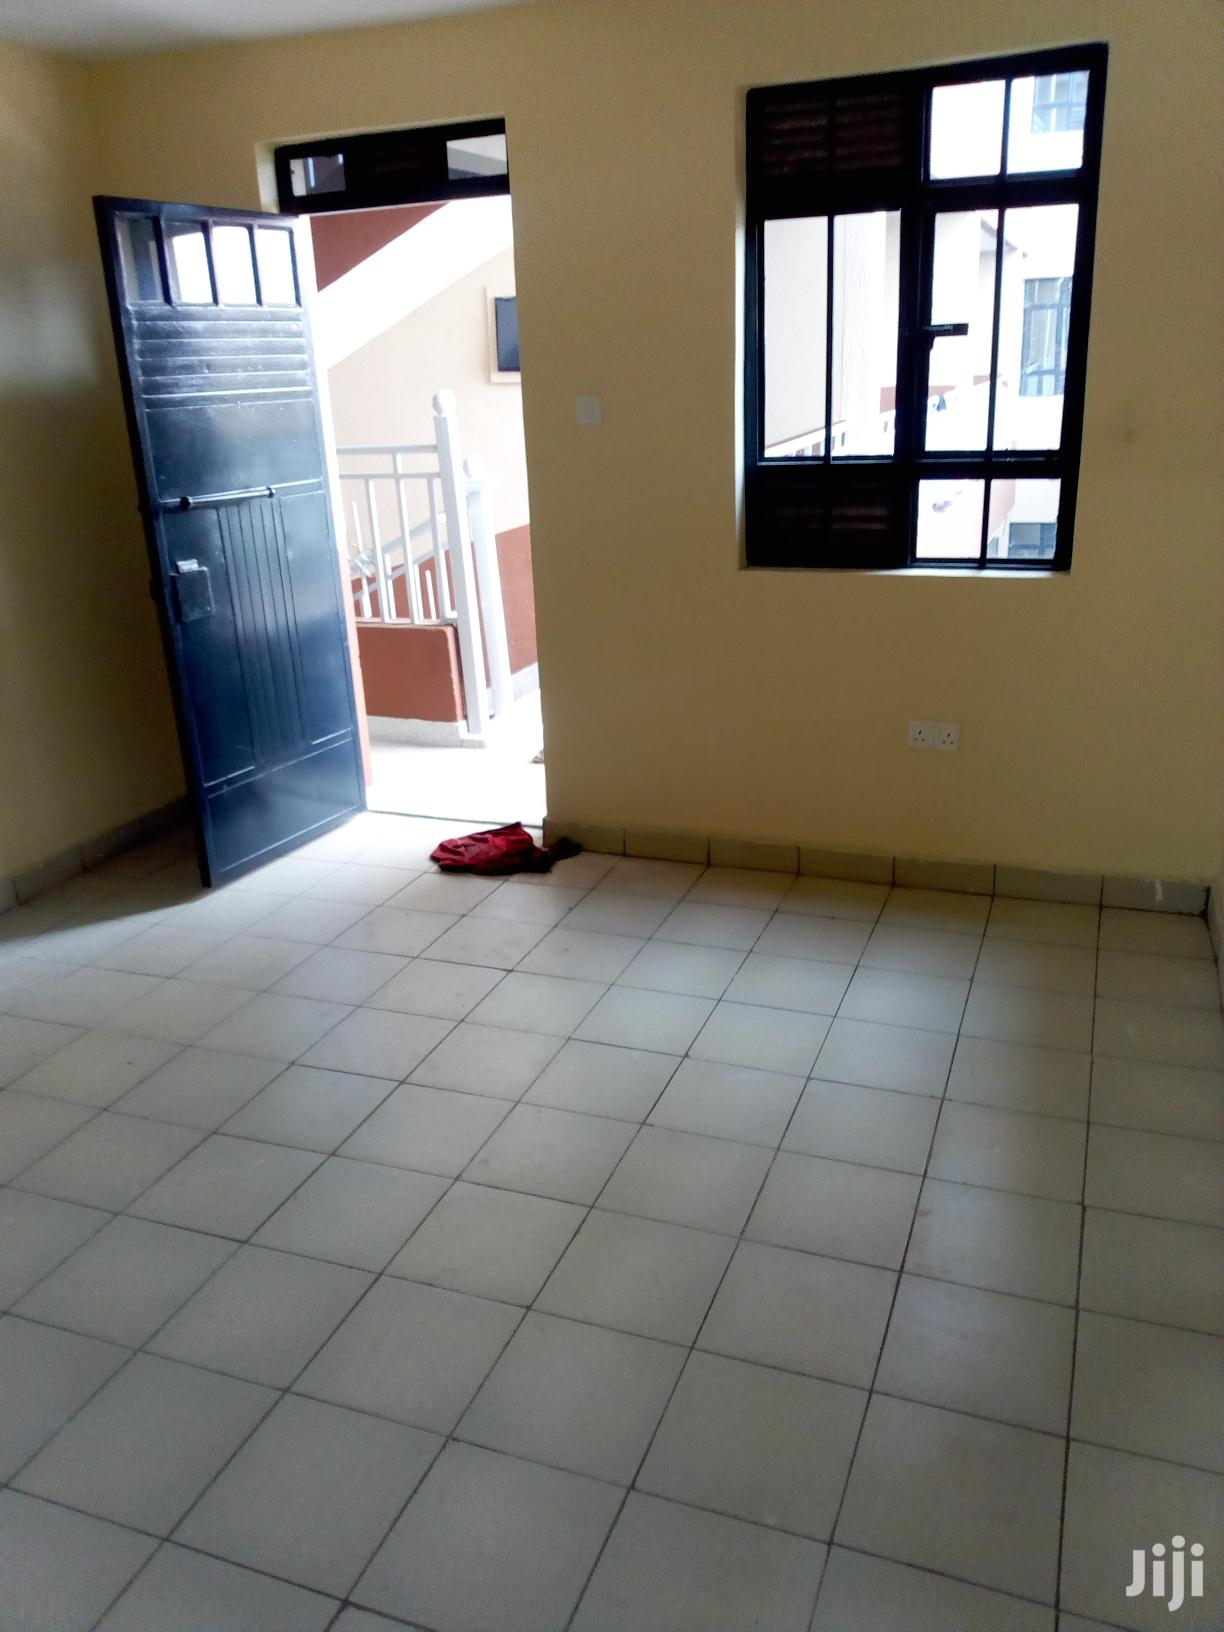 Archive: Letting Executive One Bedroom Utawala